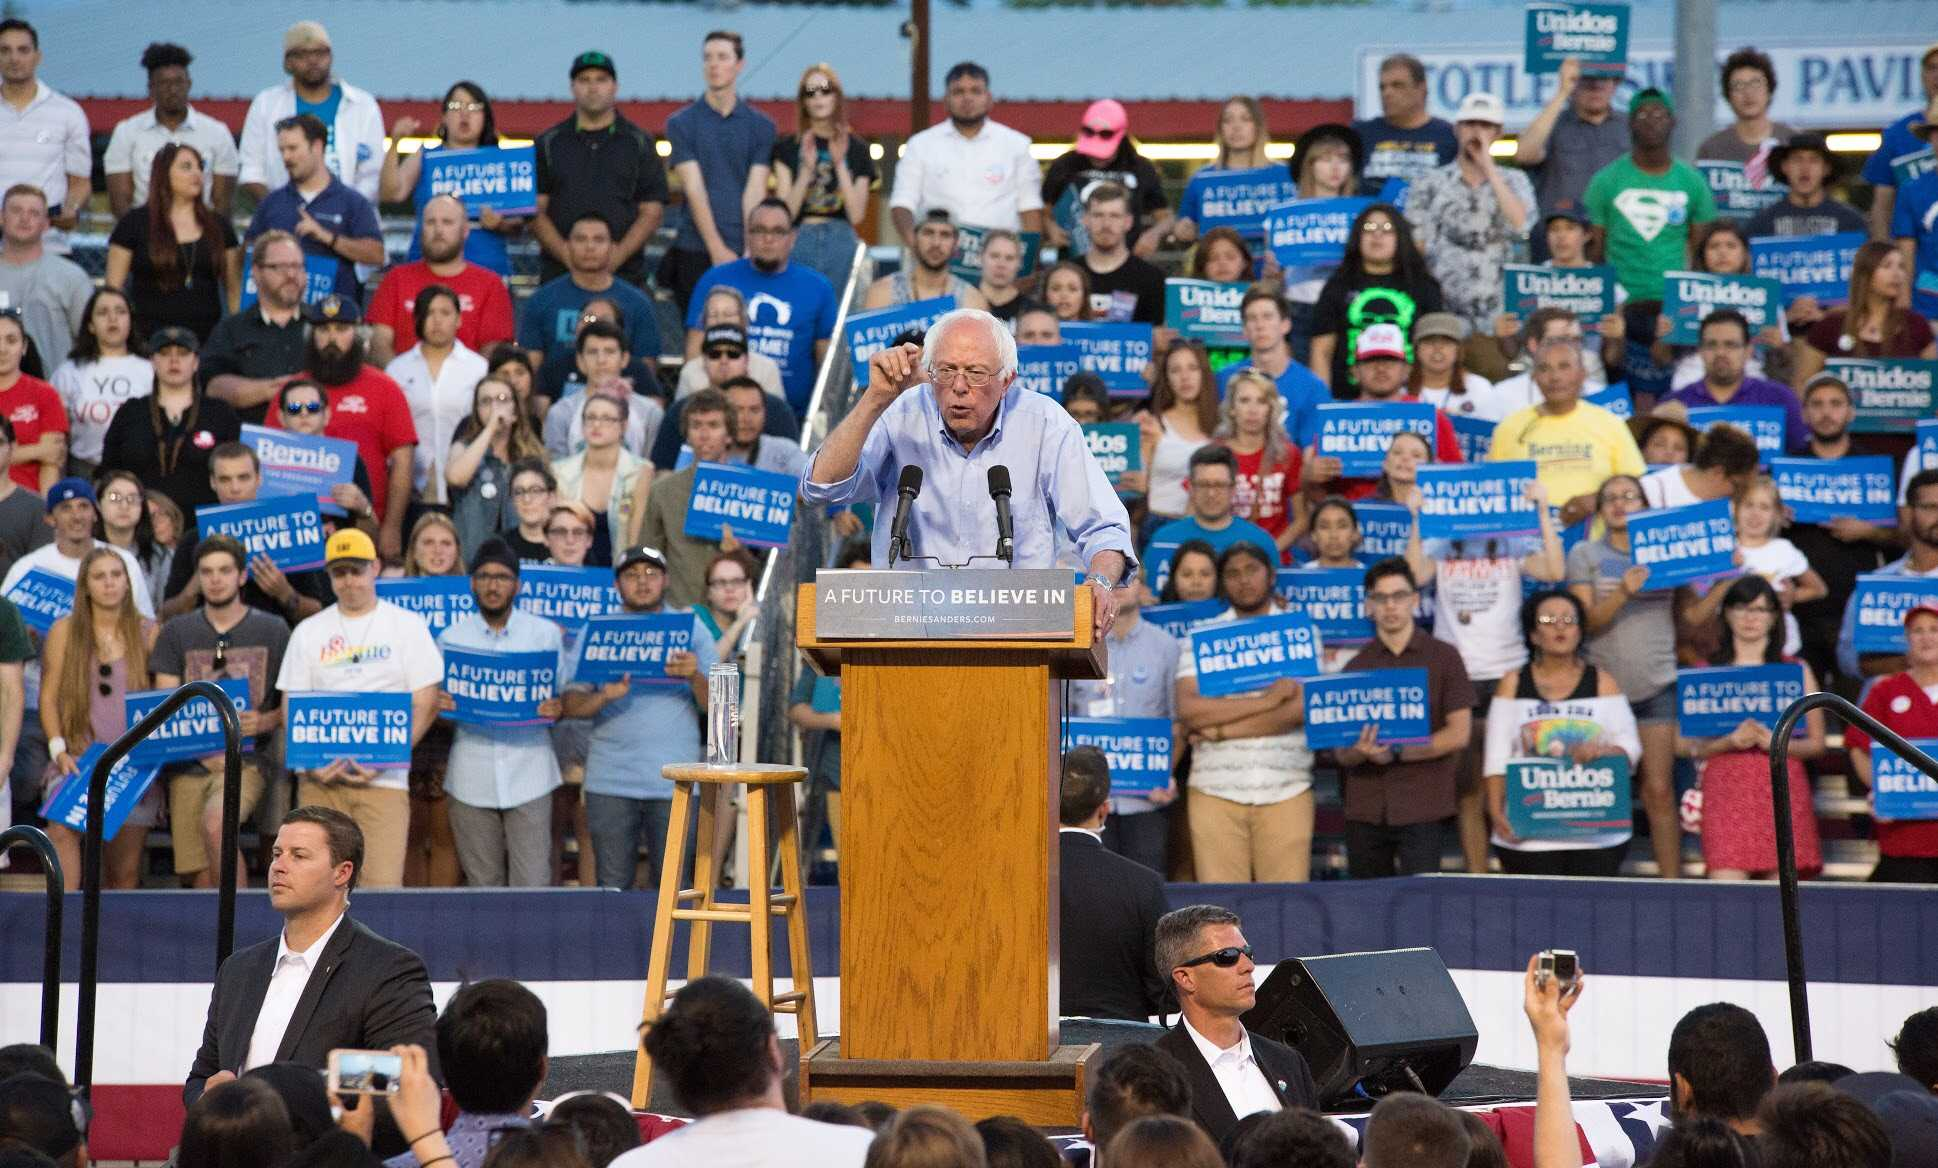 Thousands turn out for Sanders rally in Bakersfield